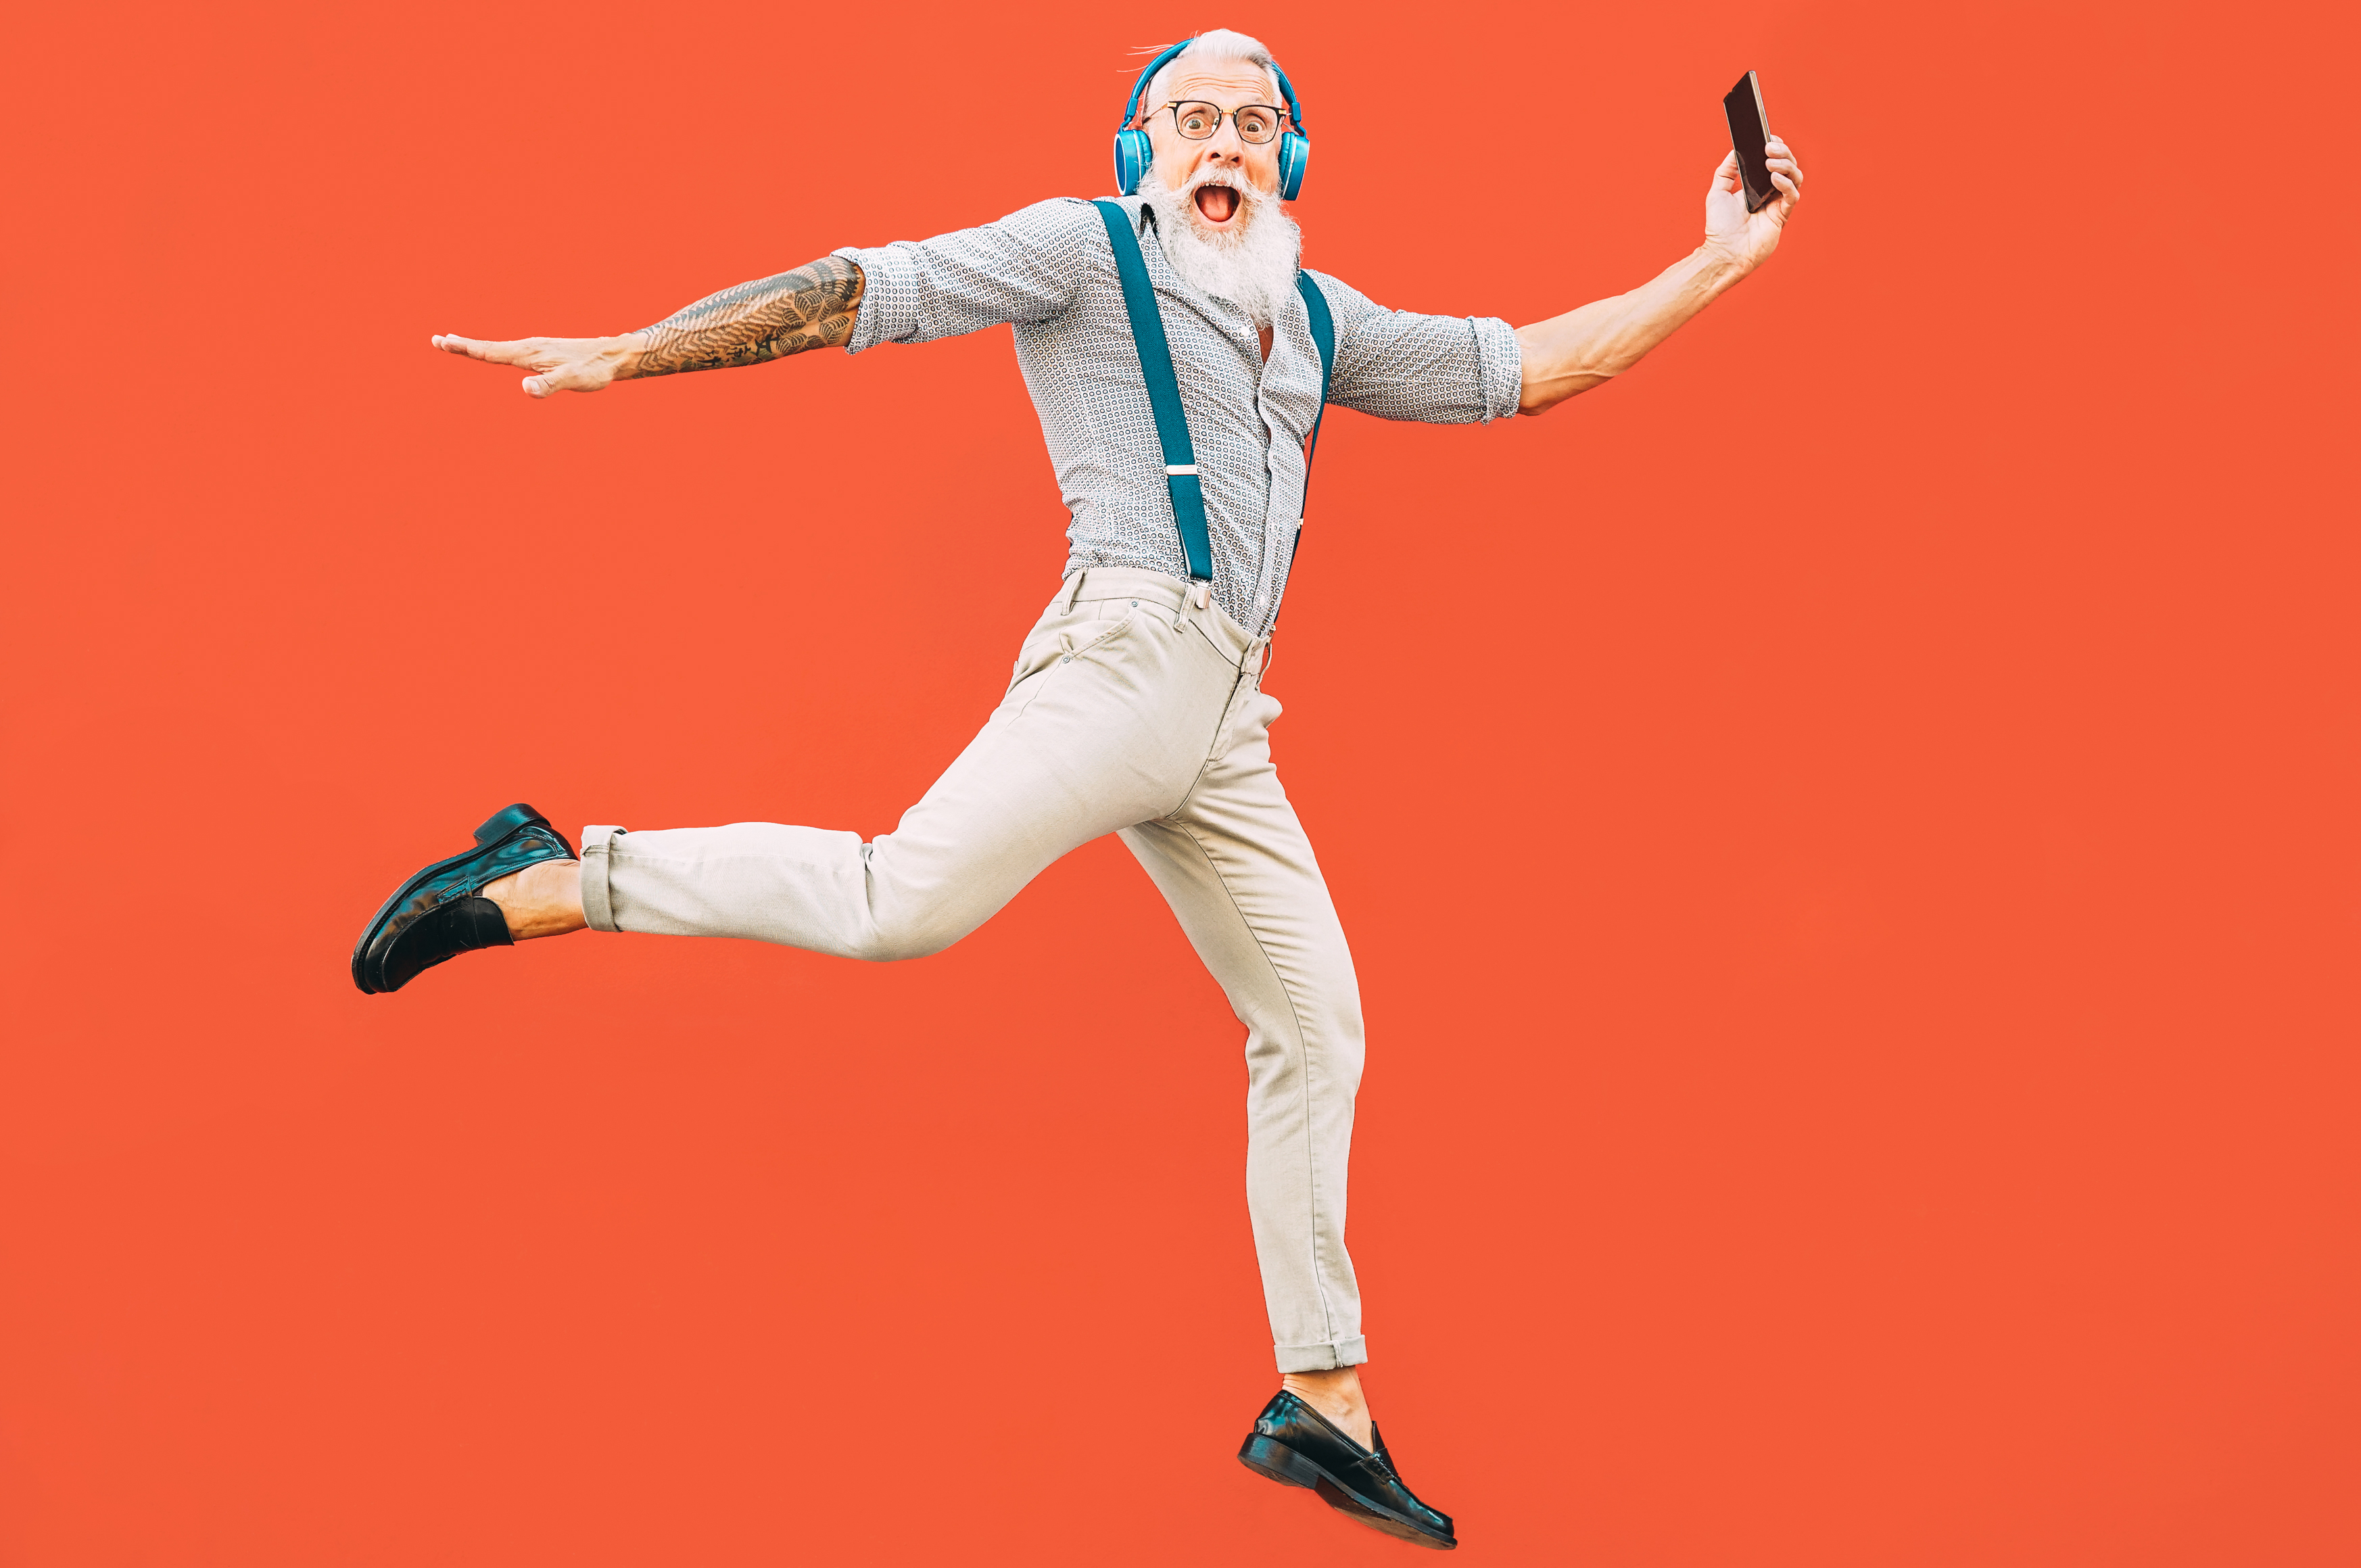 Senior crazy man jumping while listening